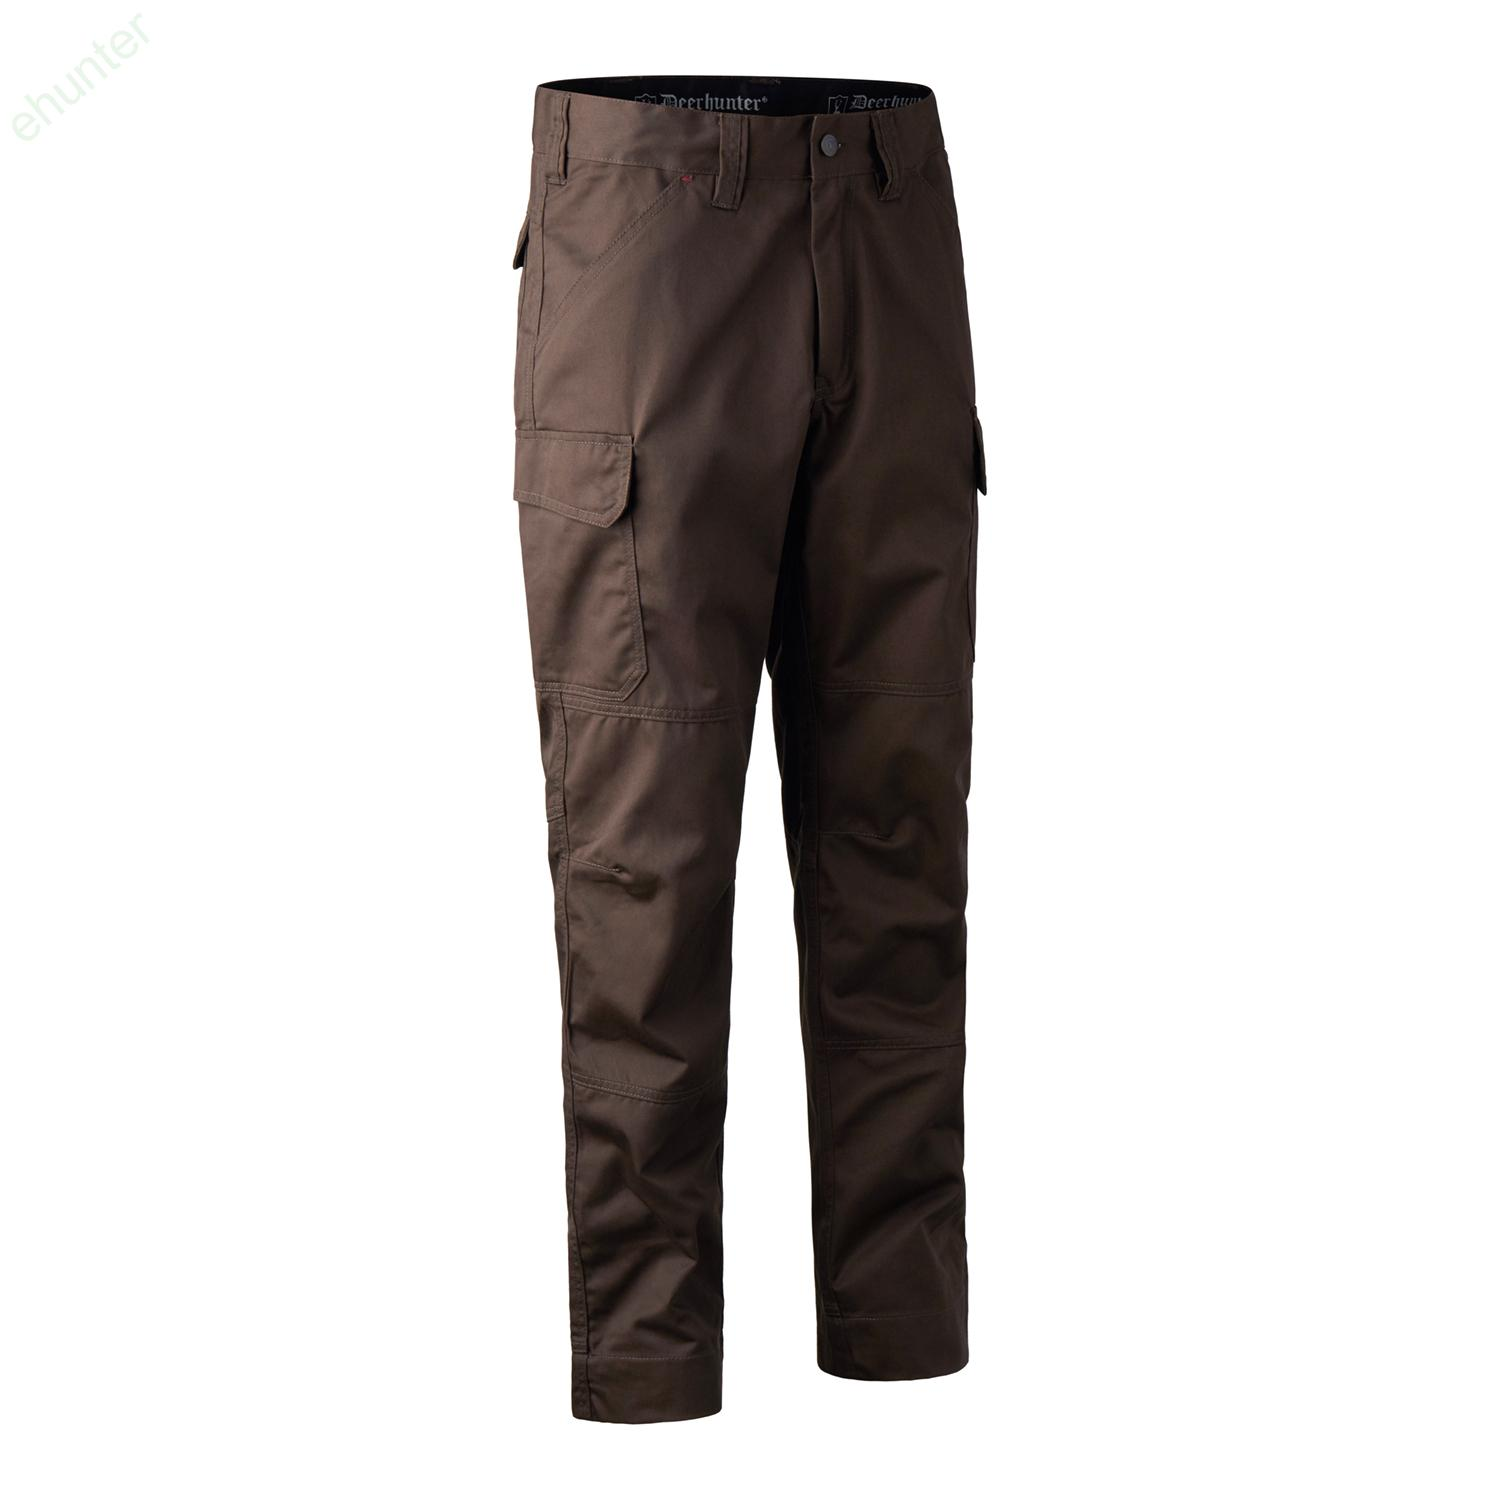 Nohavice DEERHUNTER Rogaland Expedition brown